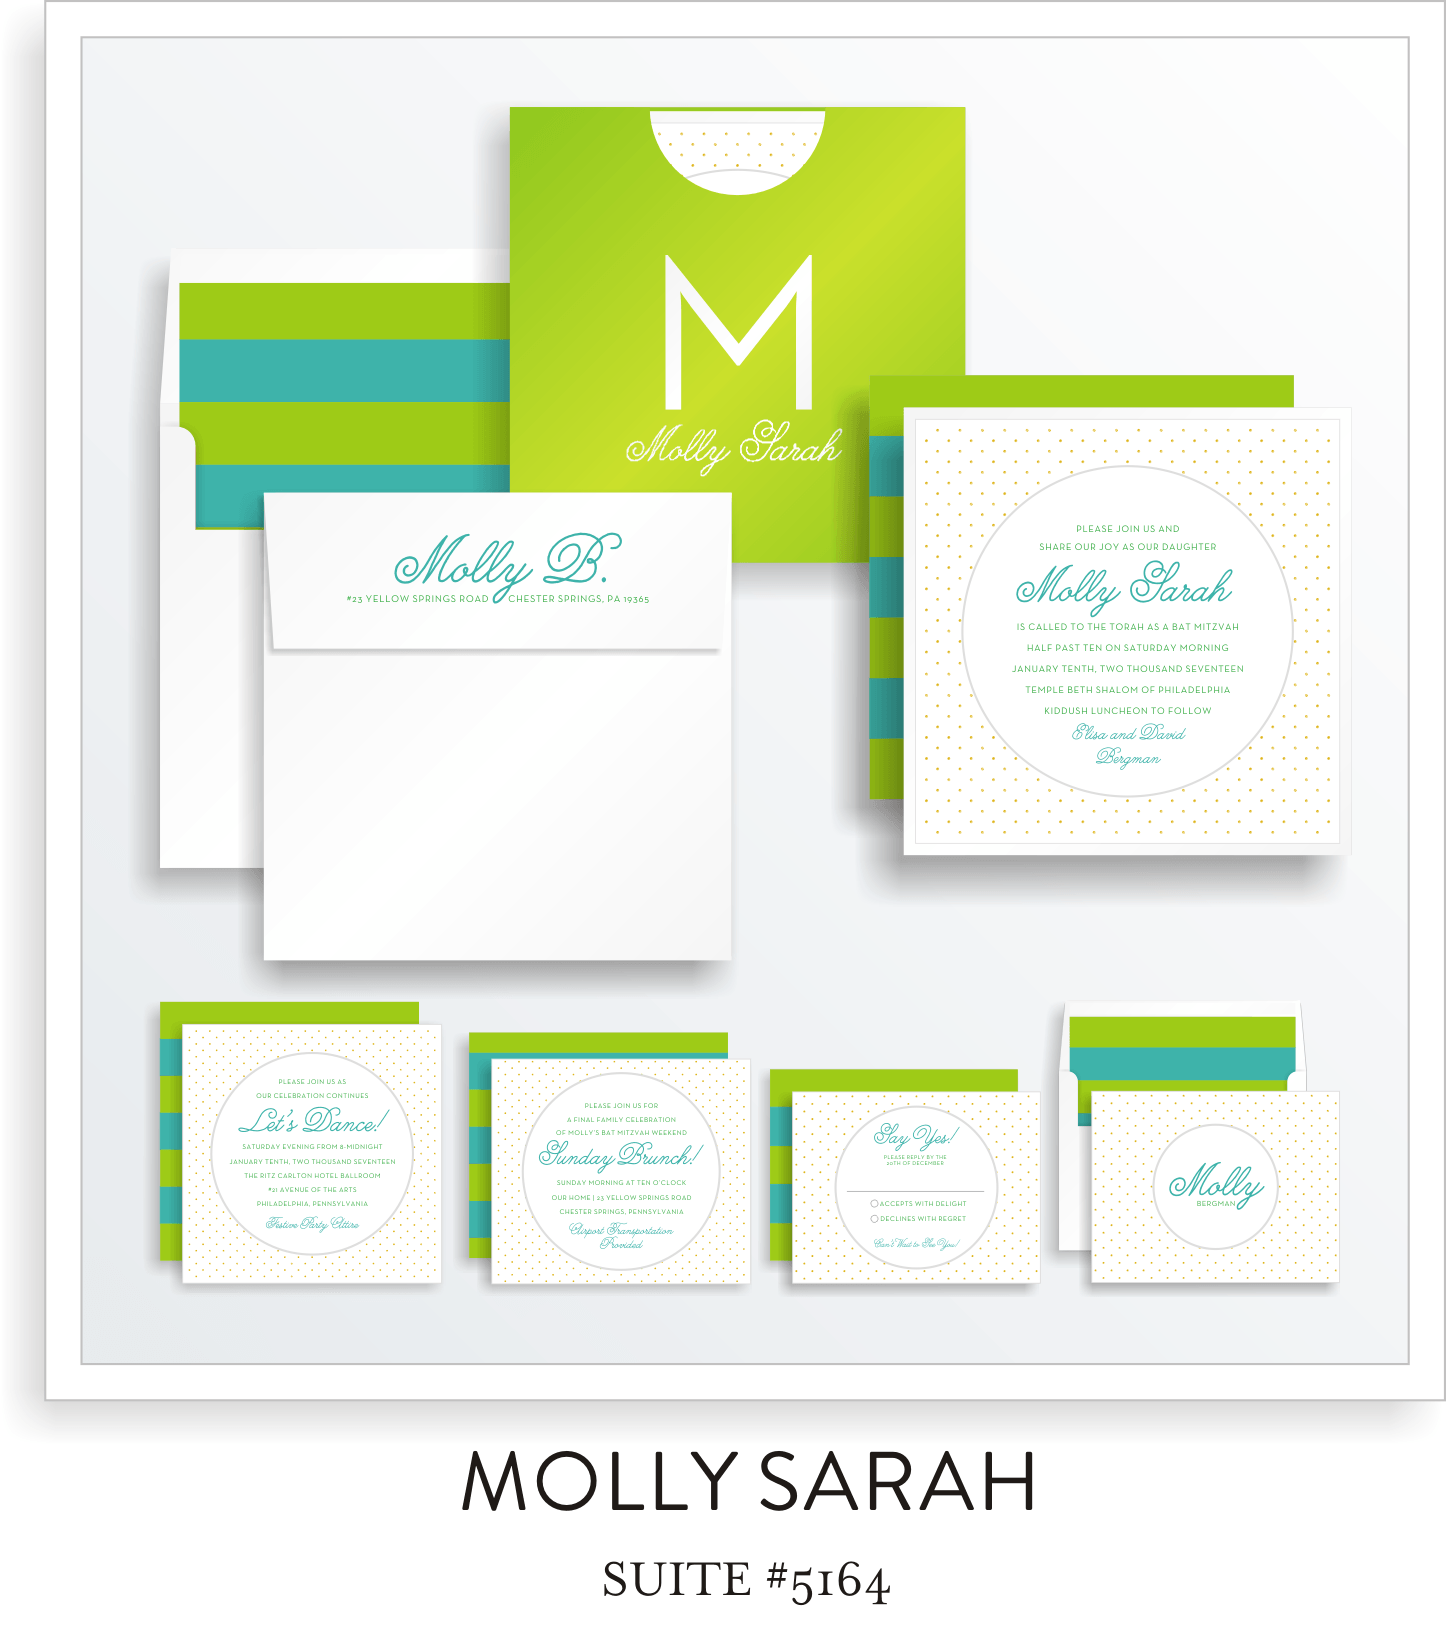 Bat Mitzvah Invitation Suite 5164 - Molly Sarah